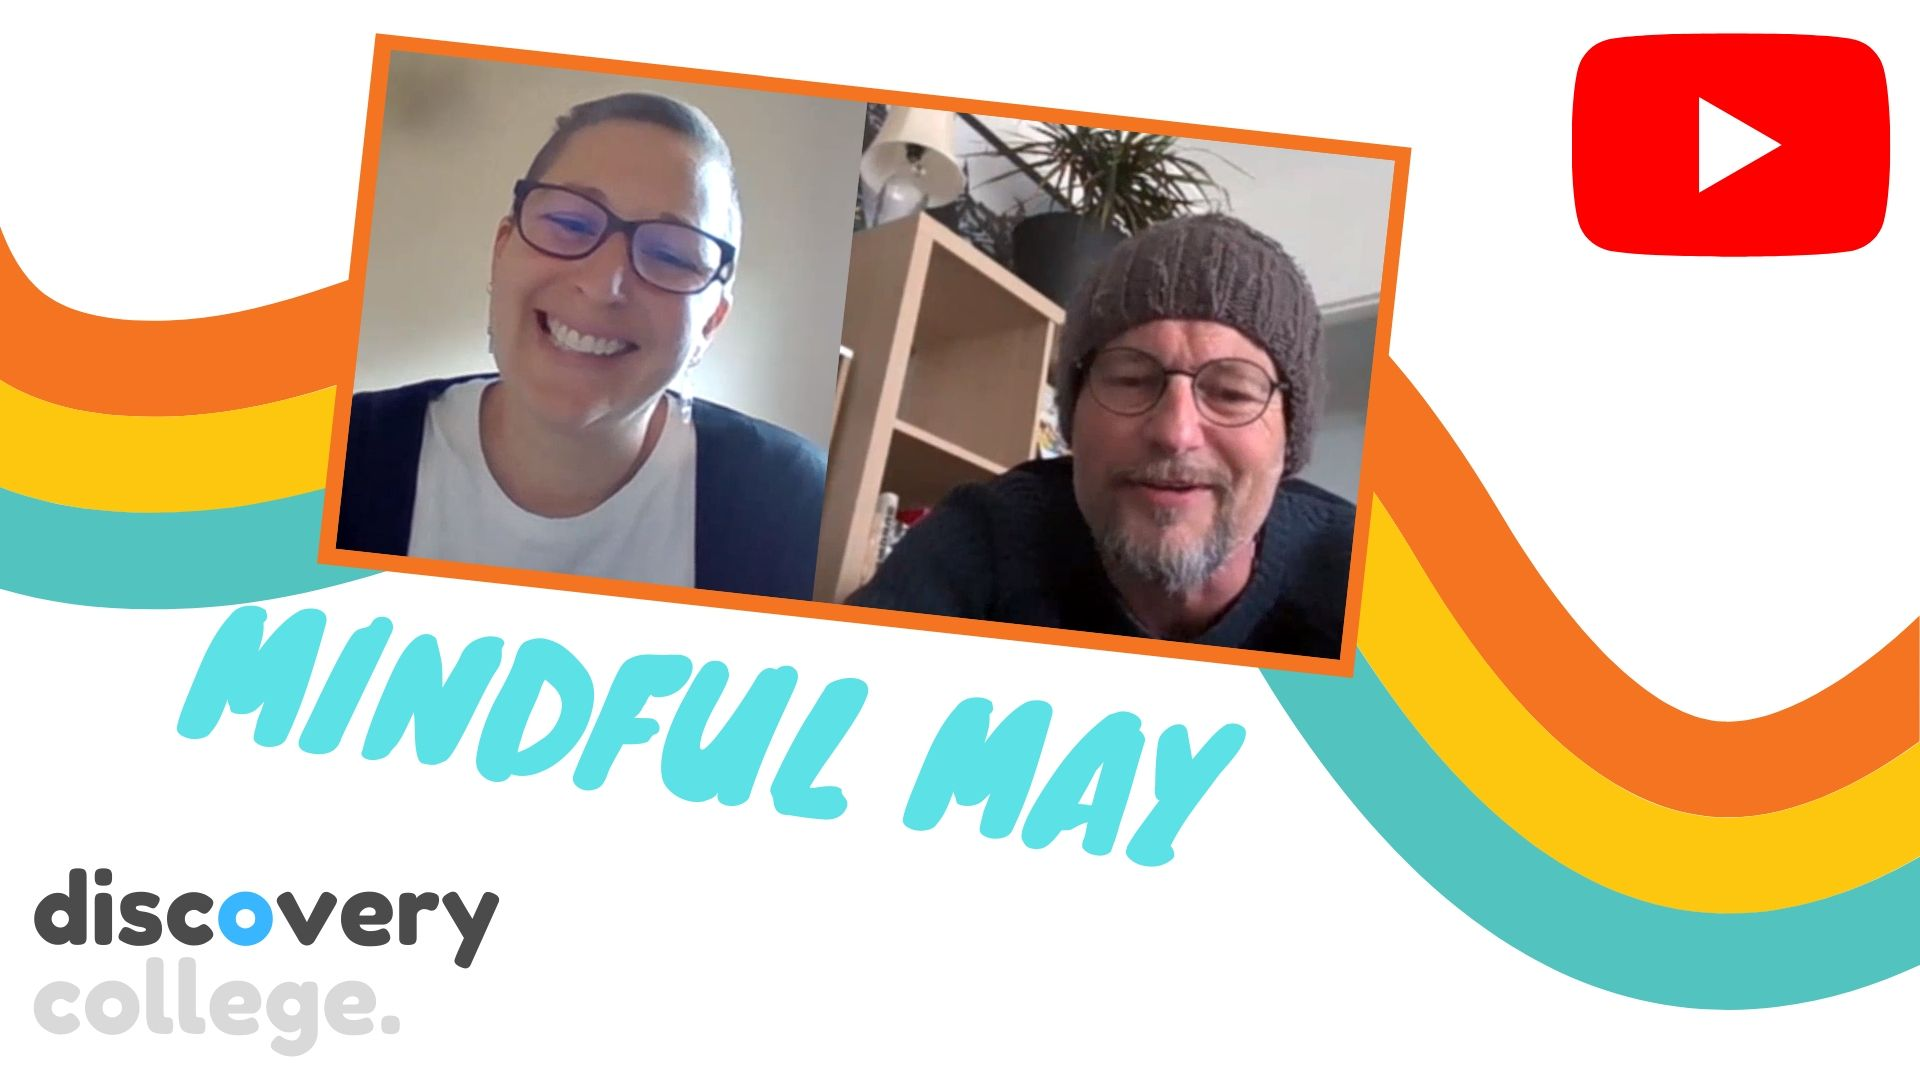 This discovery convo is part one for Mindful May